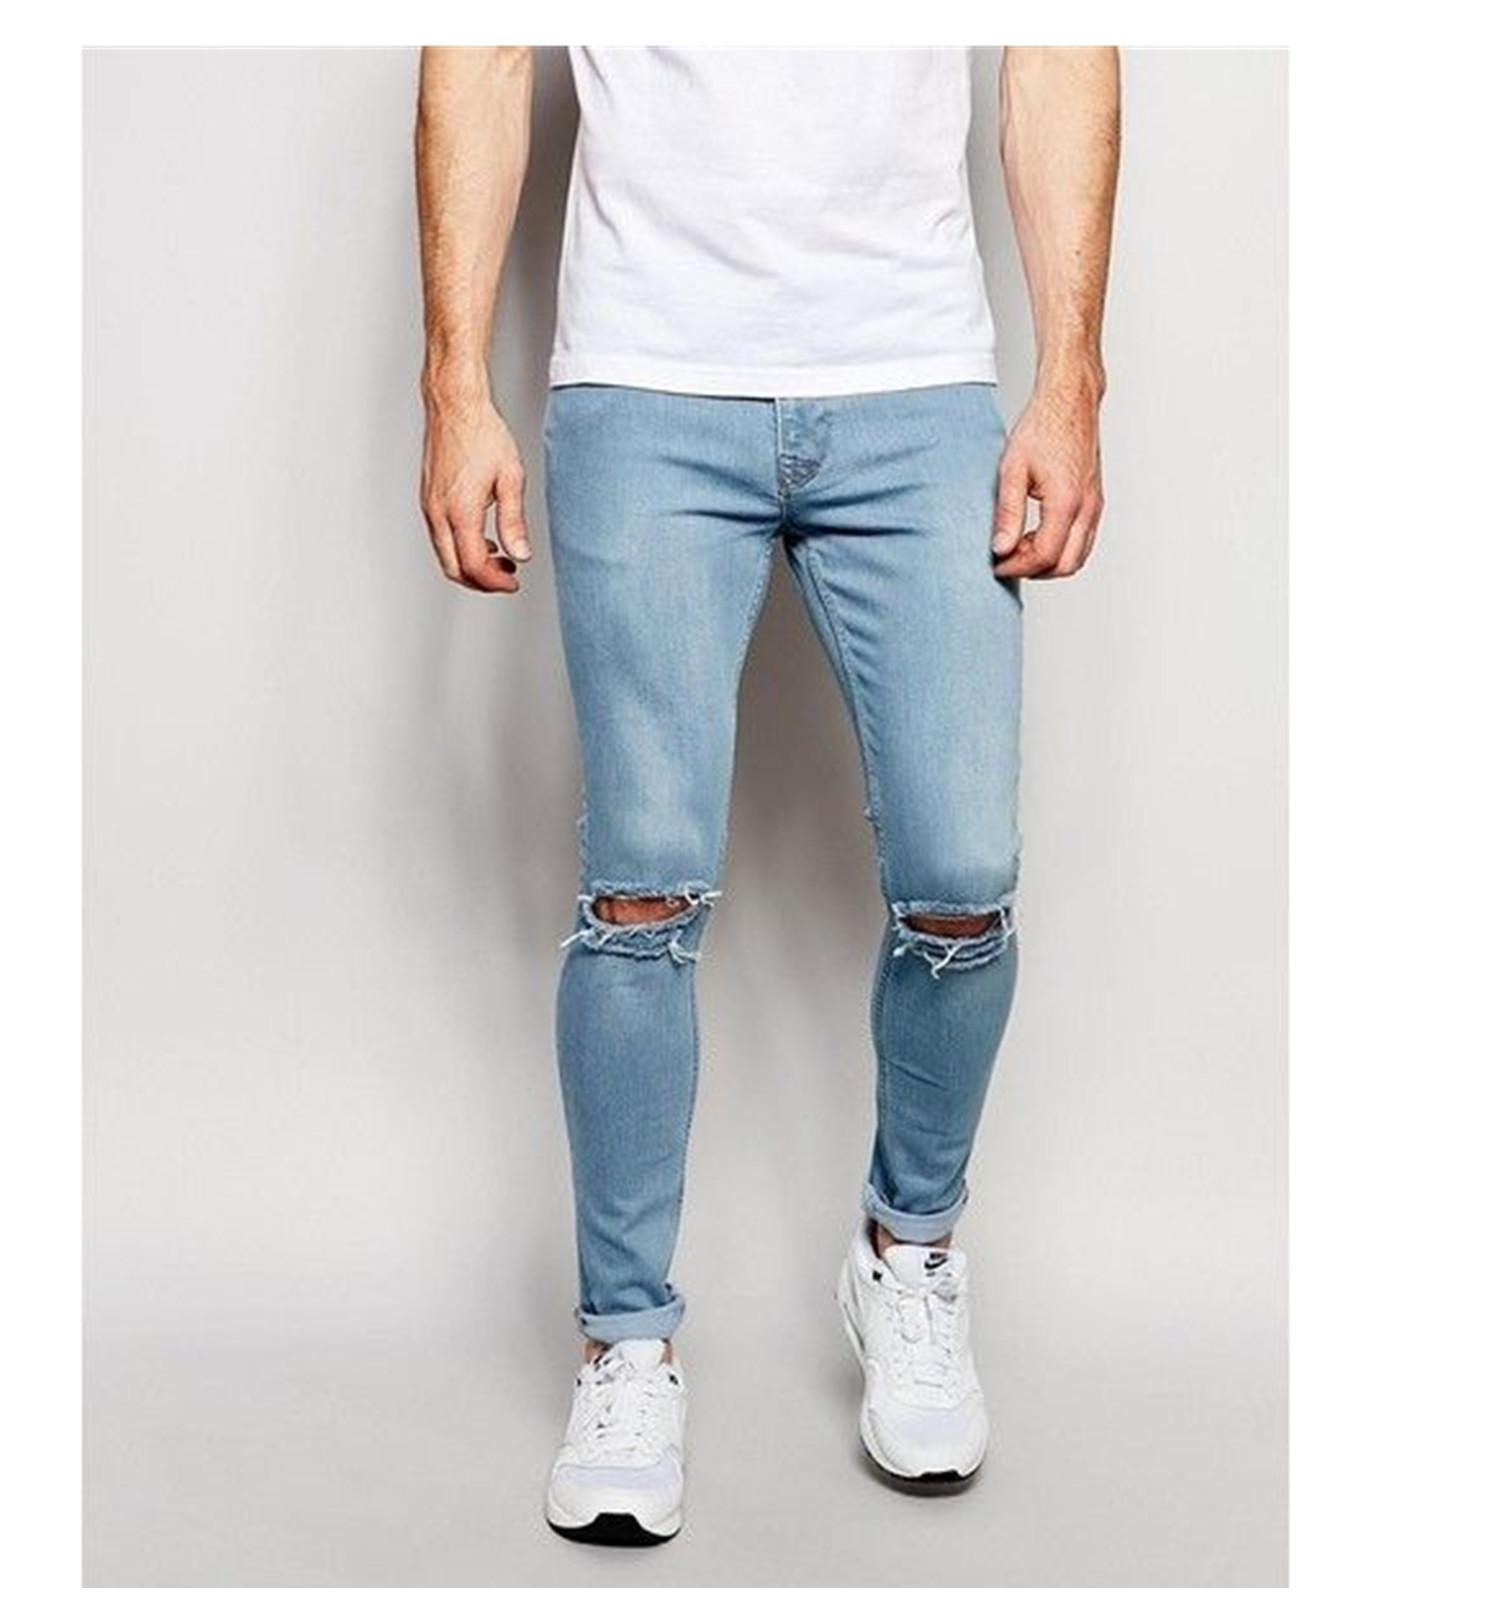 3391f06cbb5 Ripped knee cut penshoppee maong light blue stretchable skinny jeans for  Men's,COD